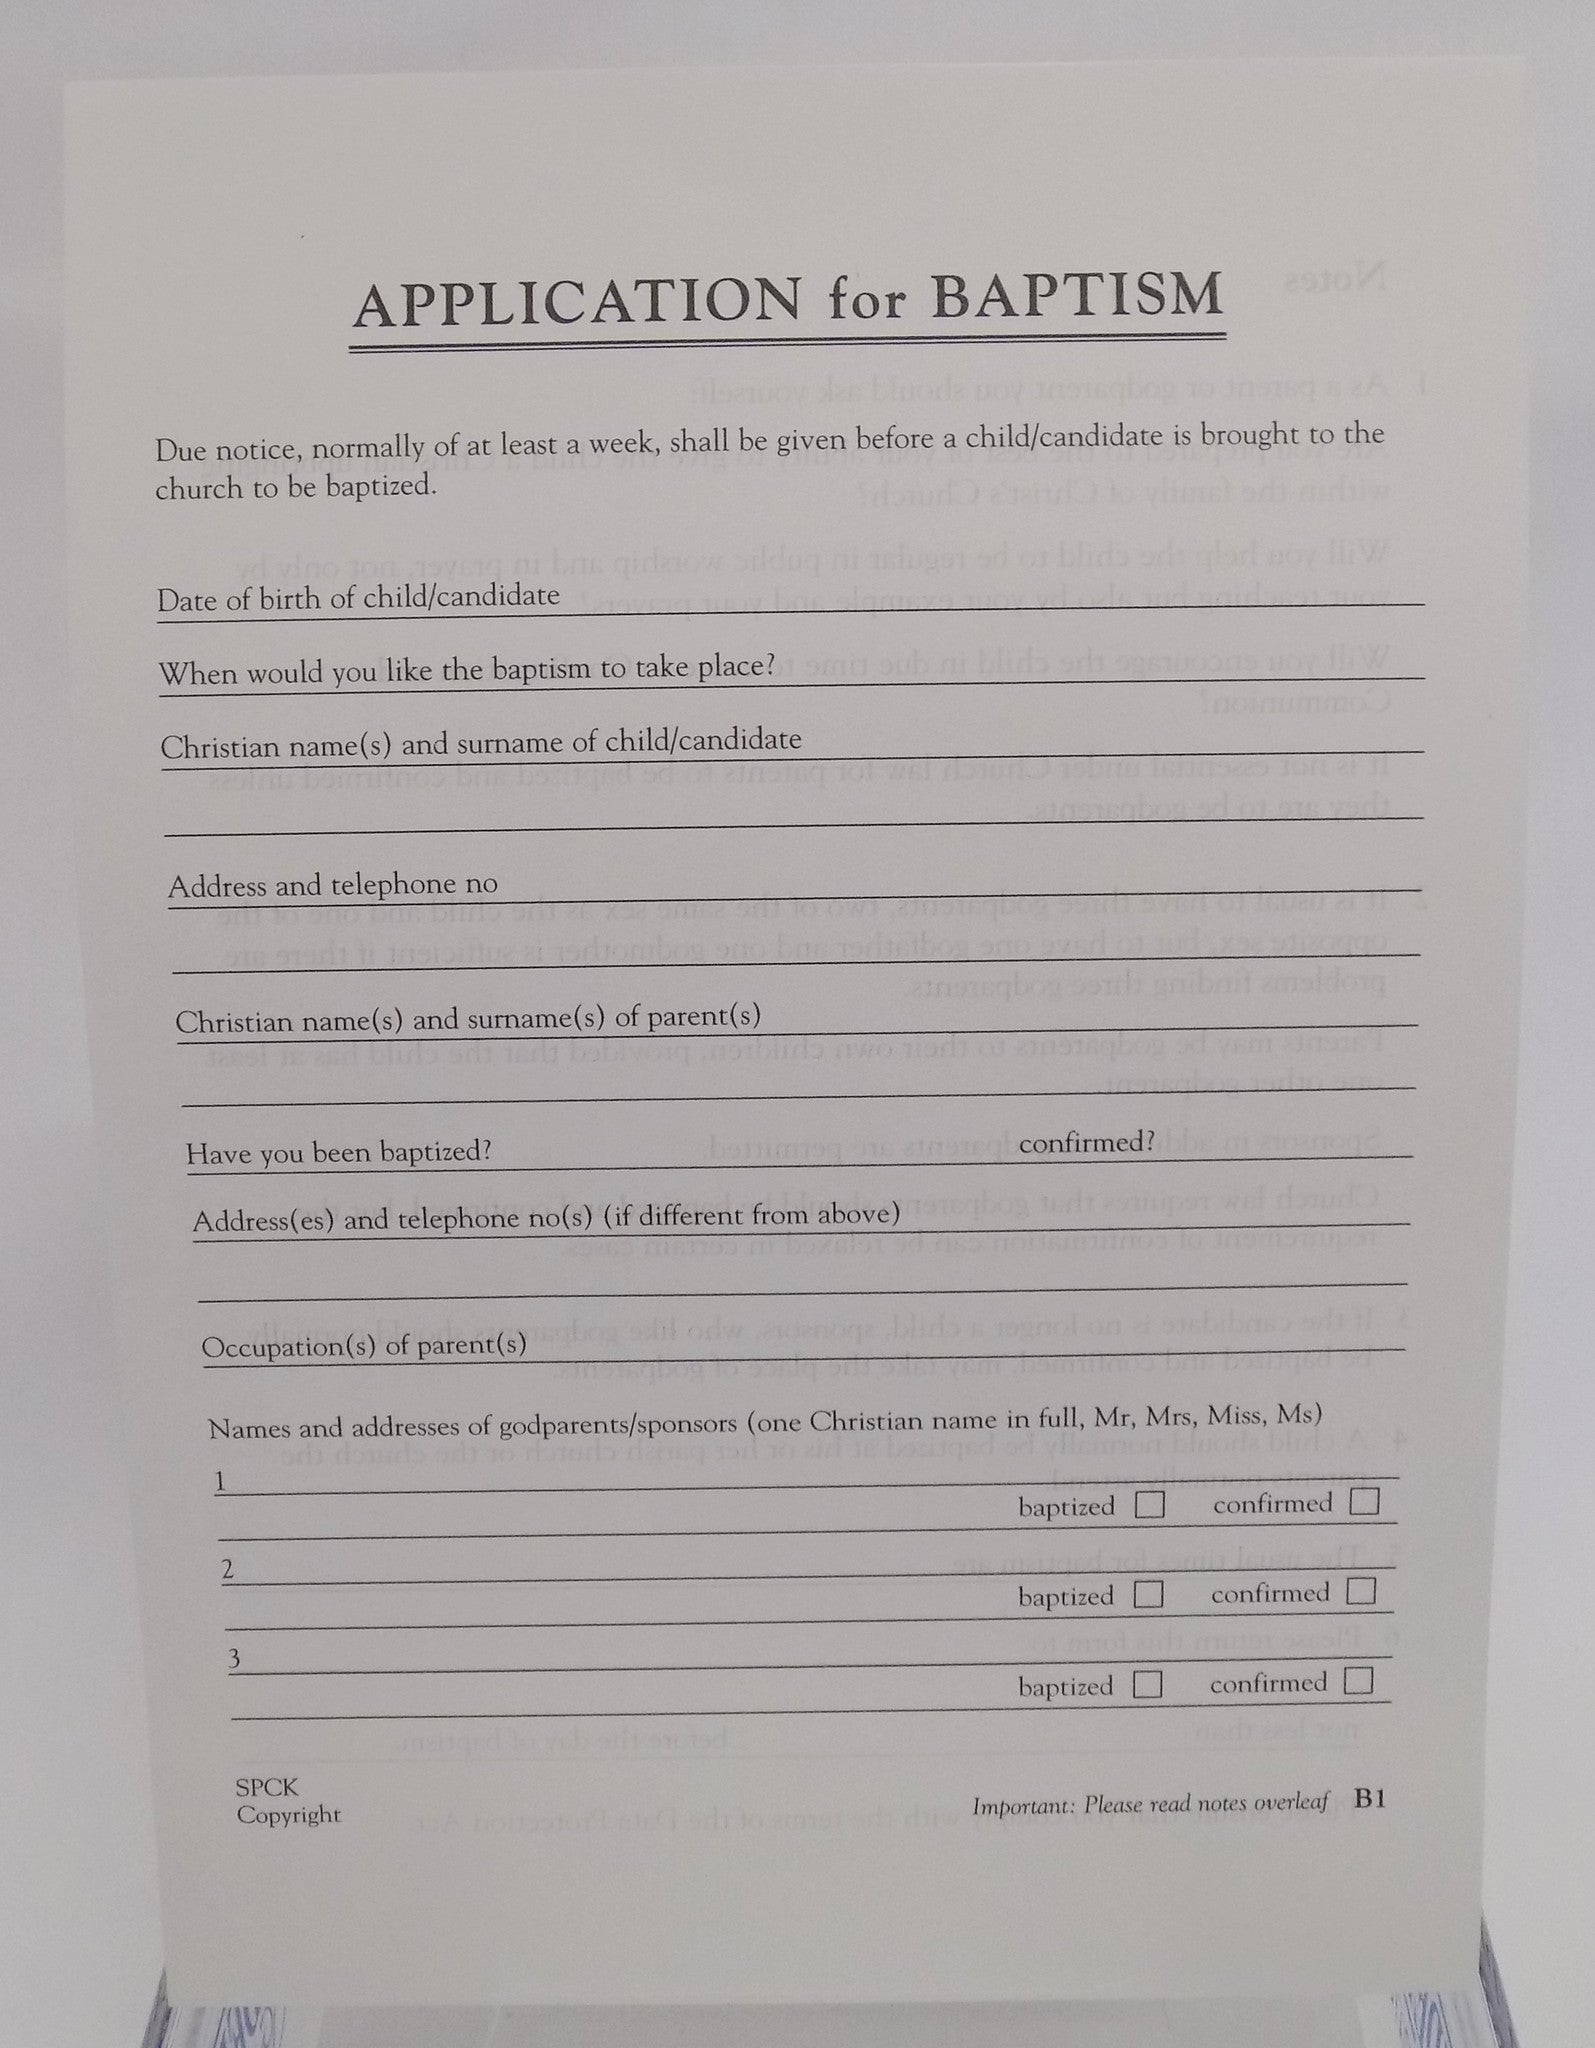 baptism application forms b liverpool cathedral baptism application forms